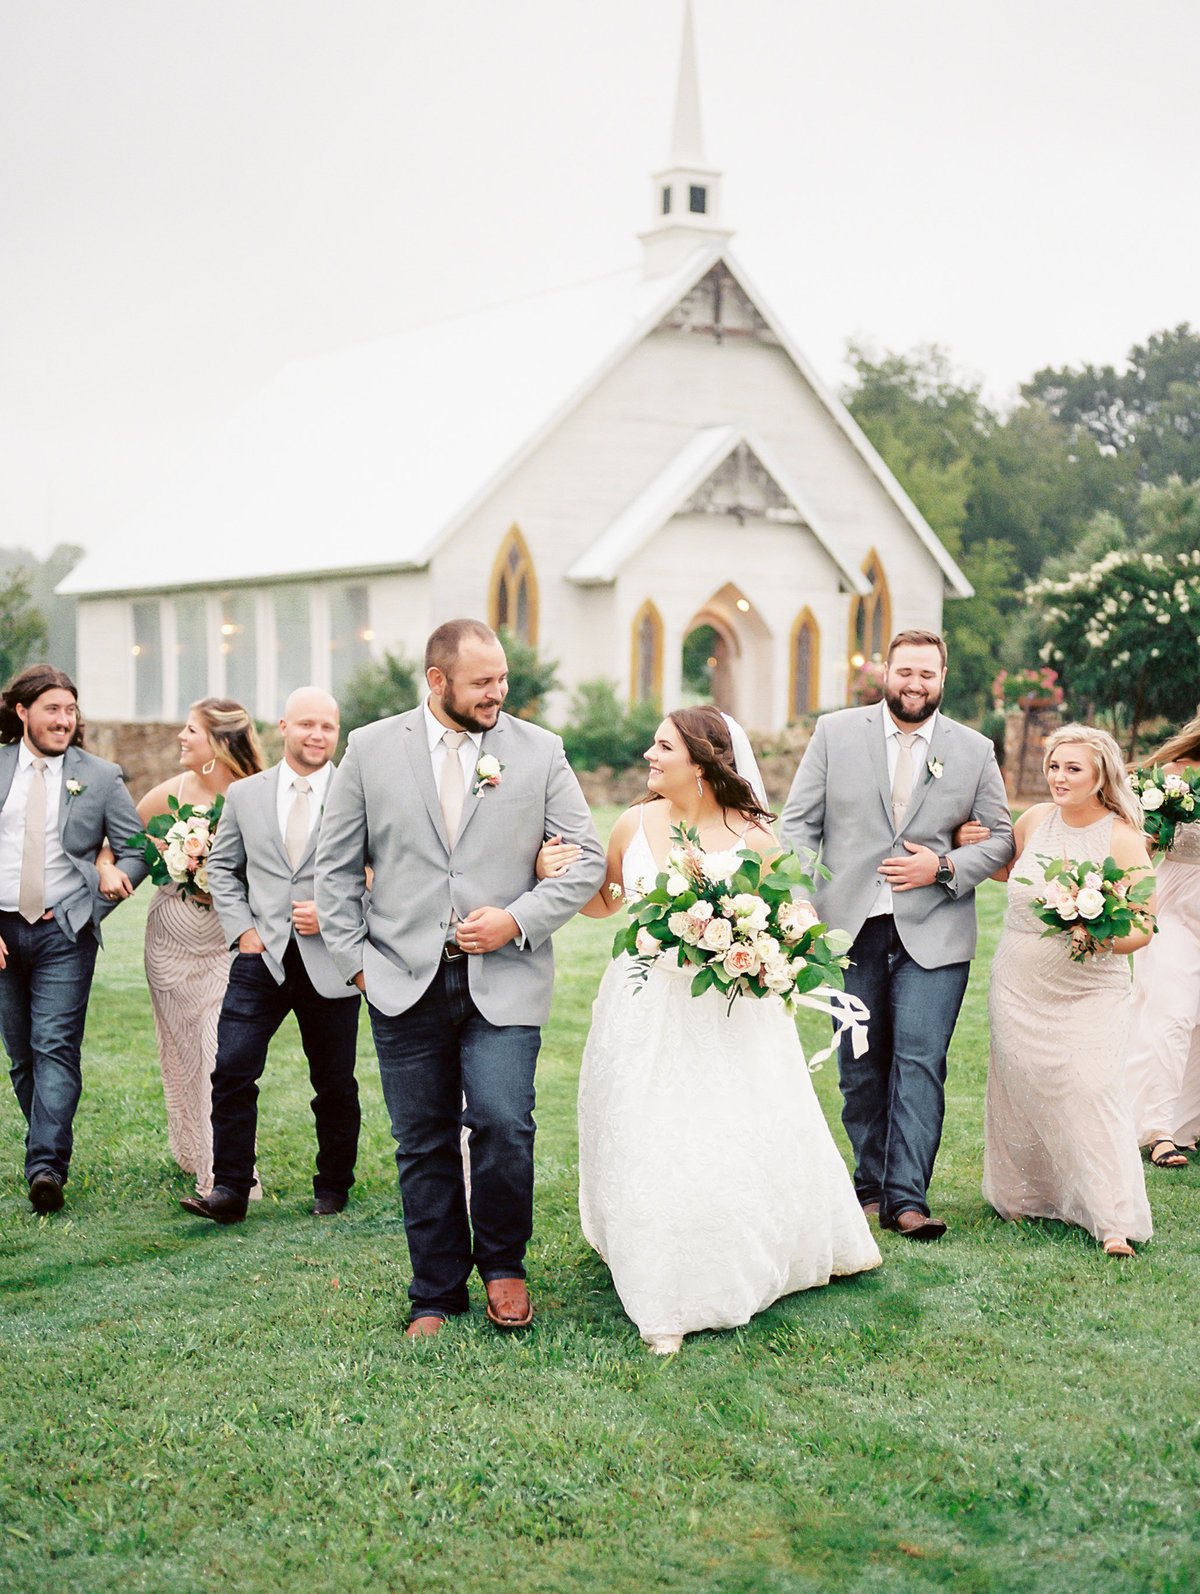 KathrynTaylor-BrooksatWeatherford-SeptemberWedding-WeddingParty-50